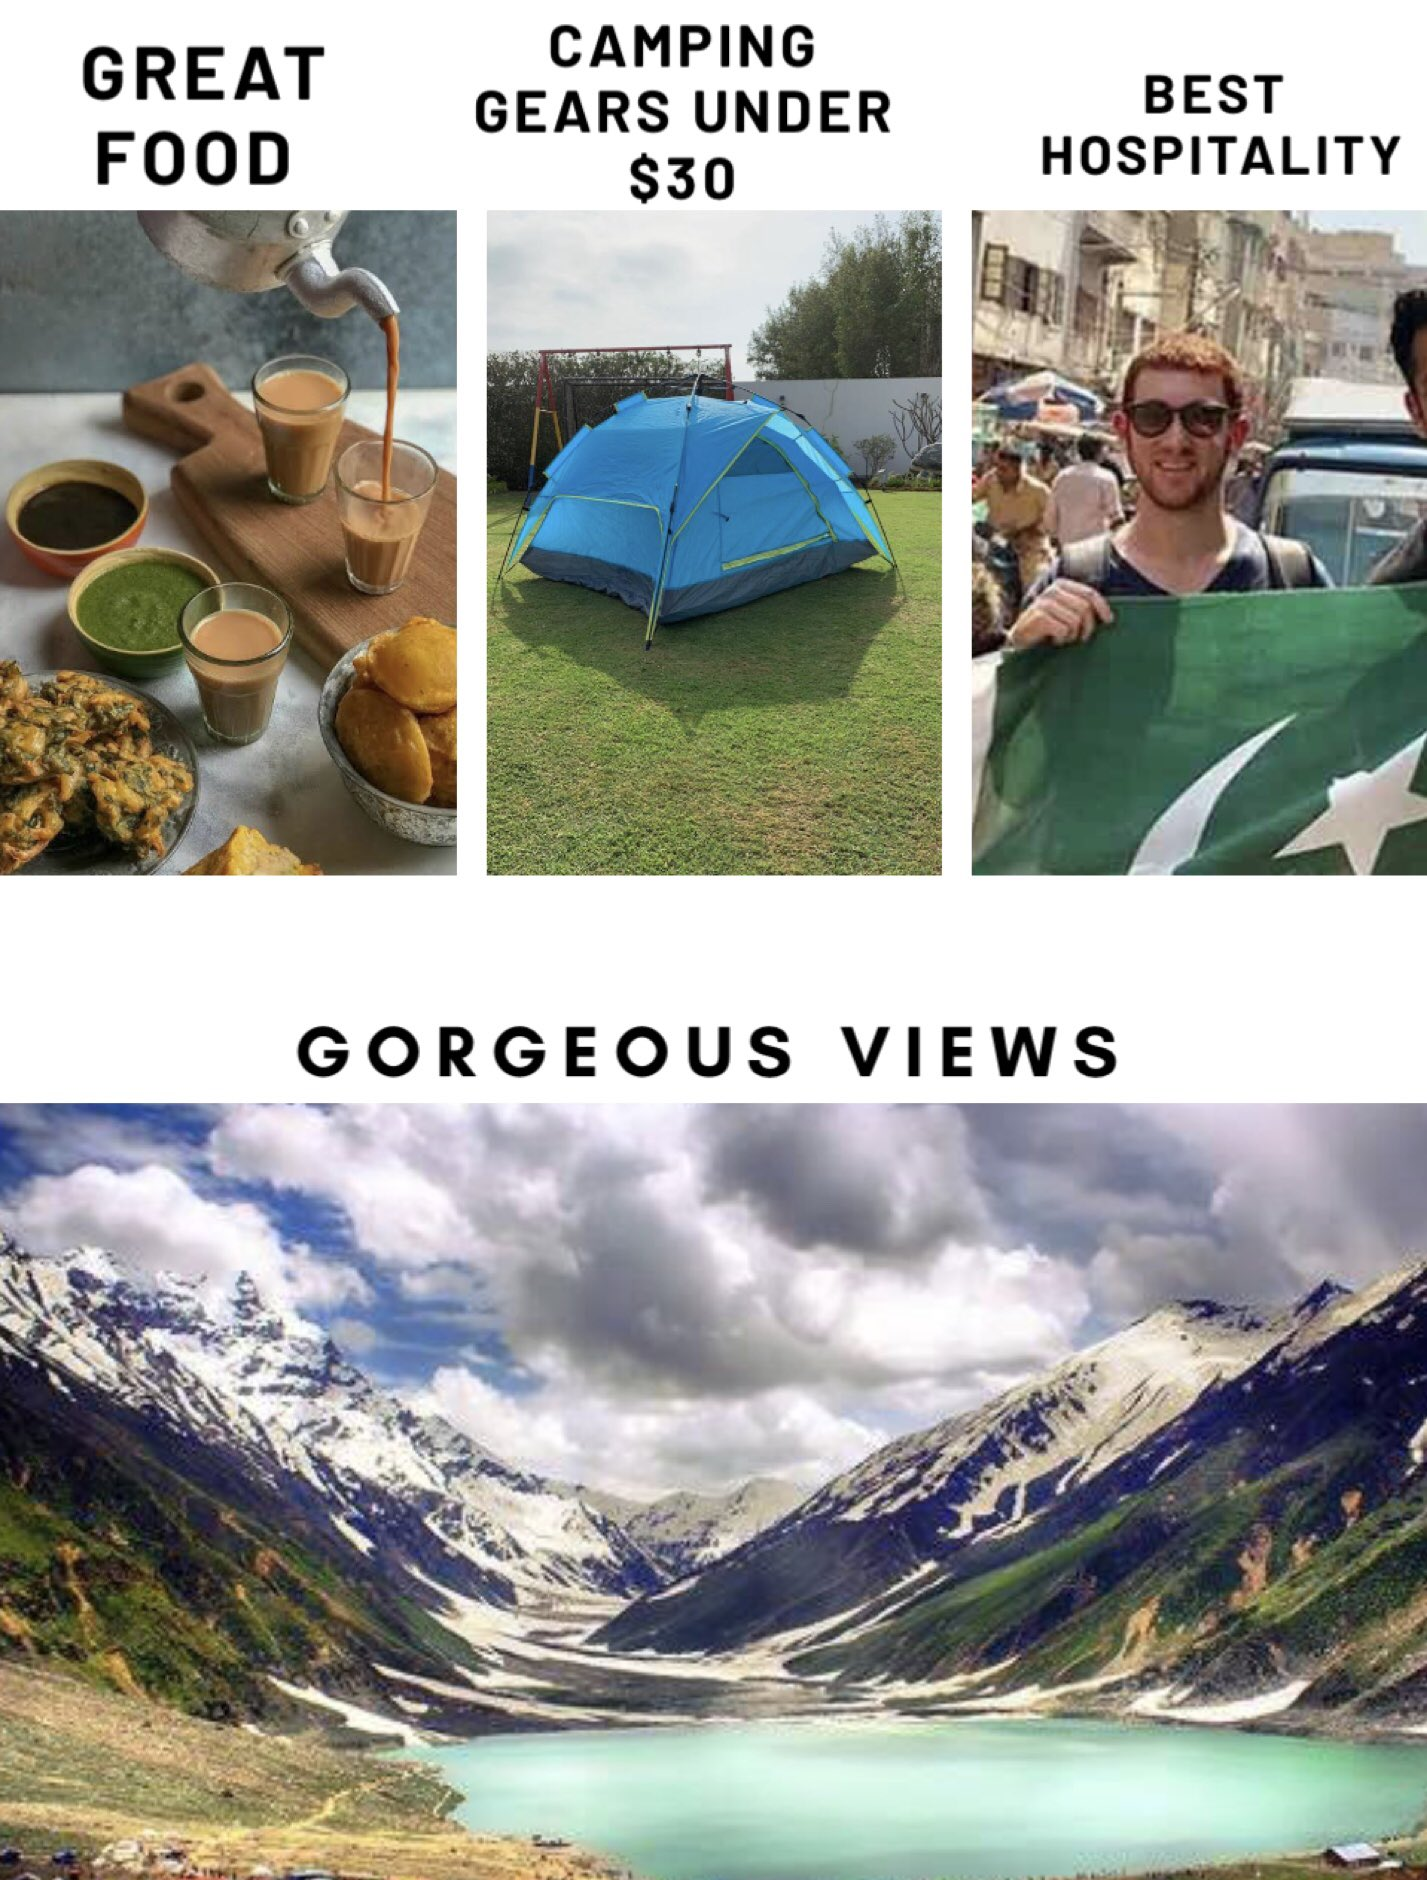 Paramount Industries On Twitter After The Whole Corona Virus Ordeal Is Over Head Over To Pakistan To Have An Amazing Camping Experience Gorgeous Views Delicious Food Camping Gear Under 30 Best Hospitality